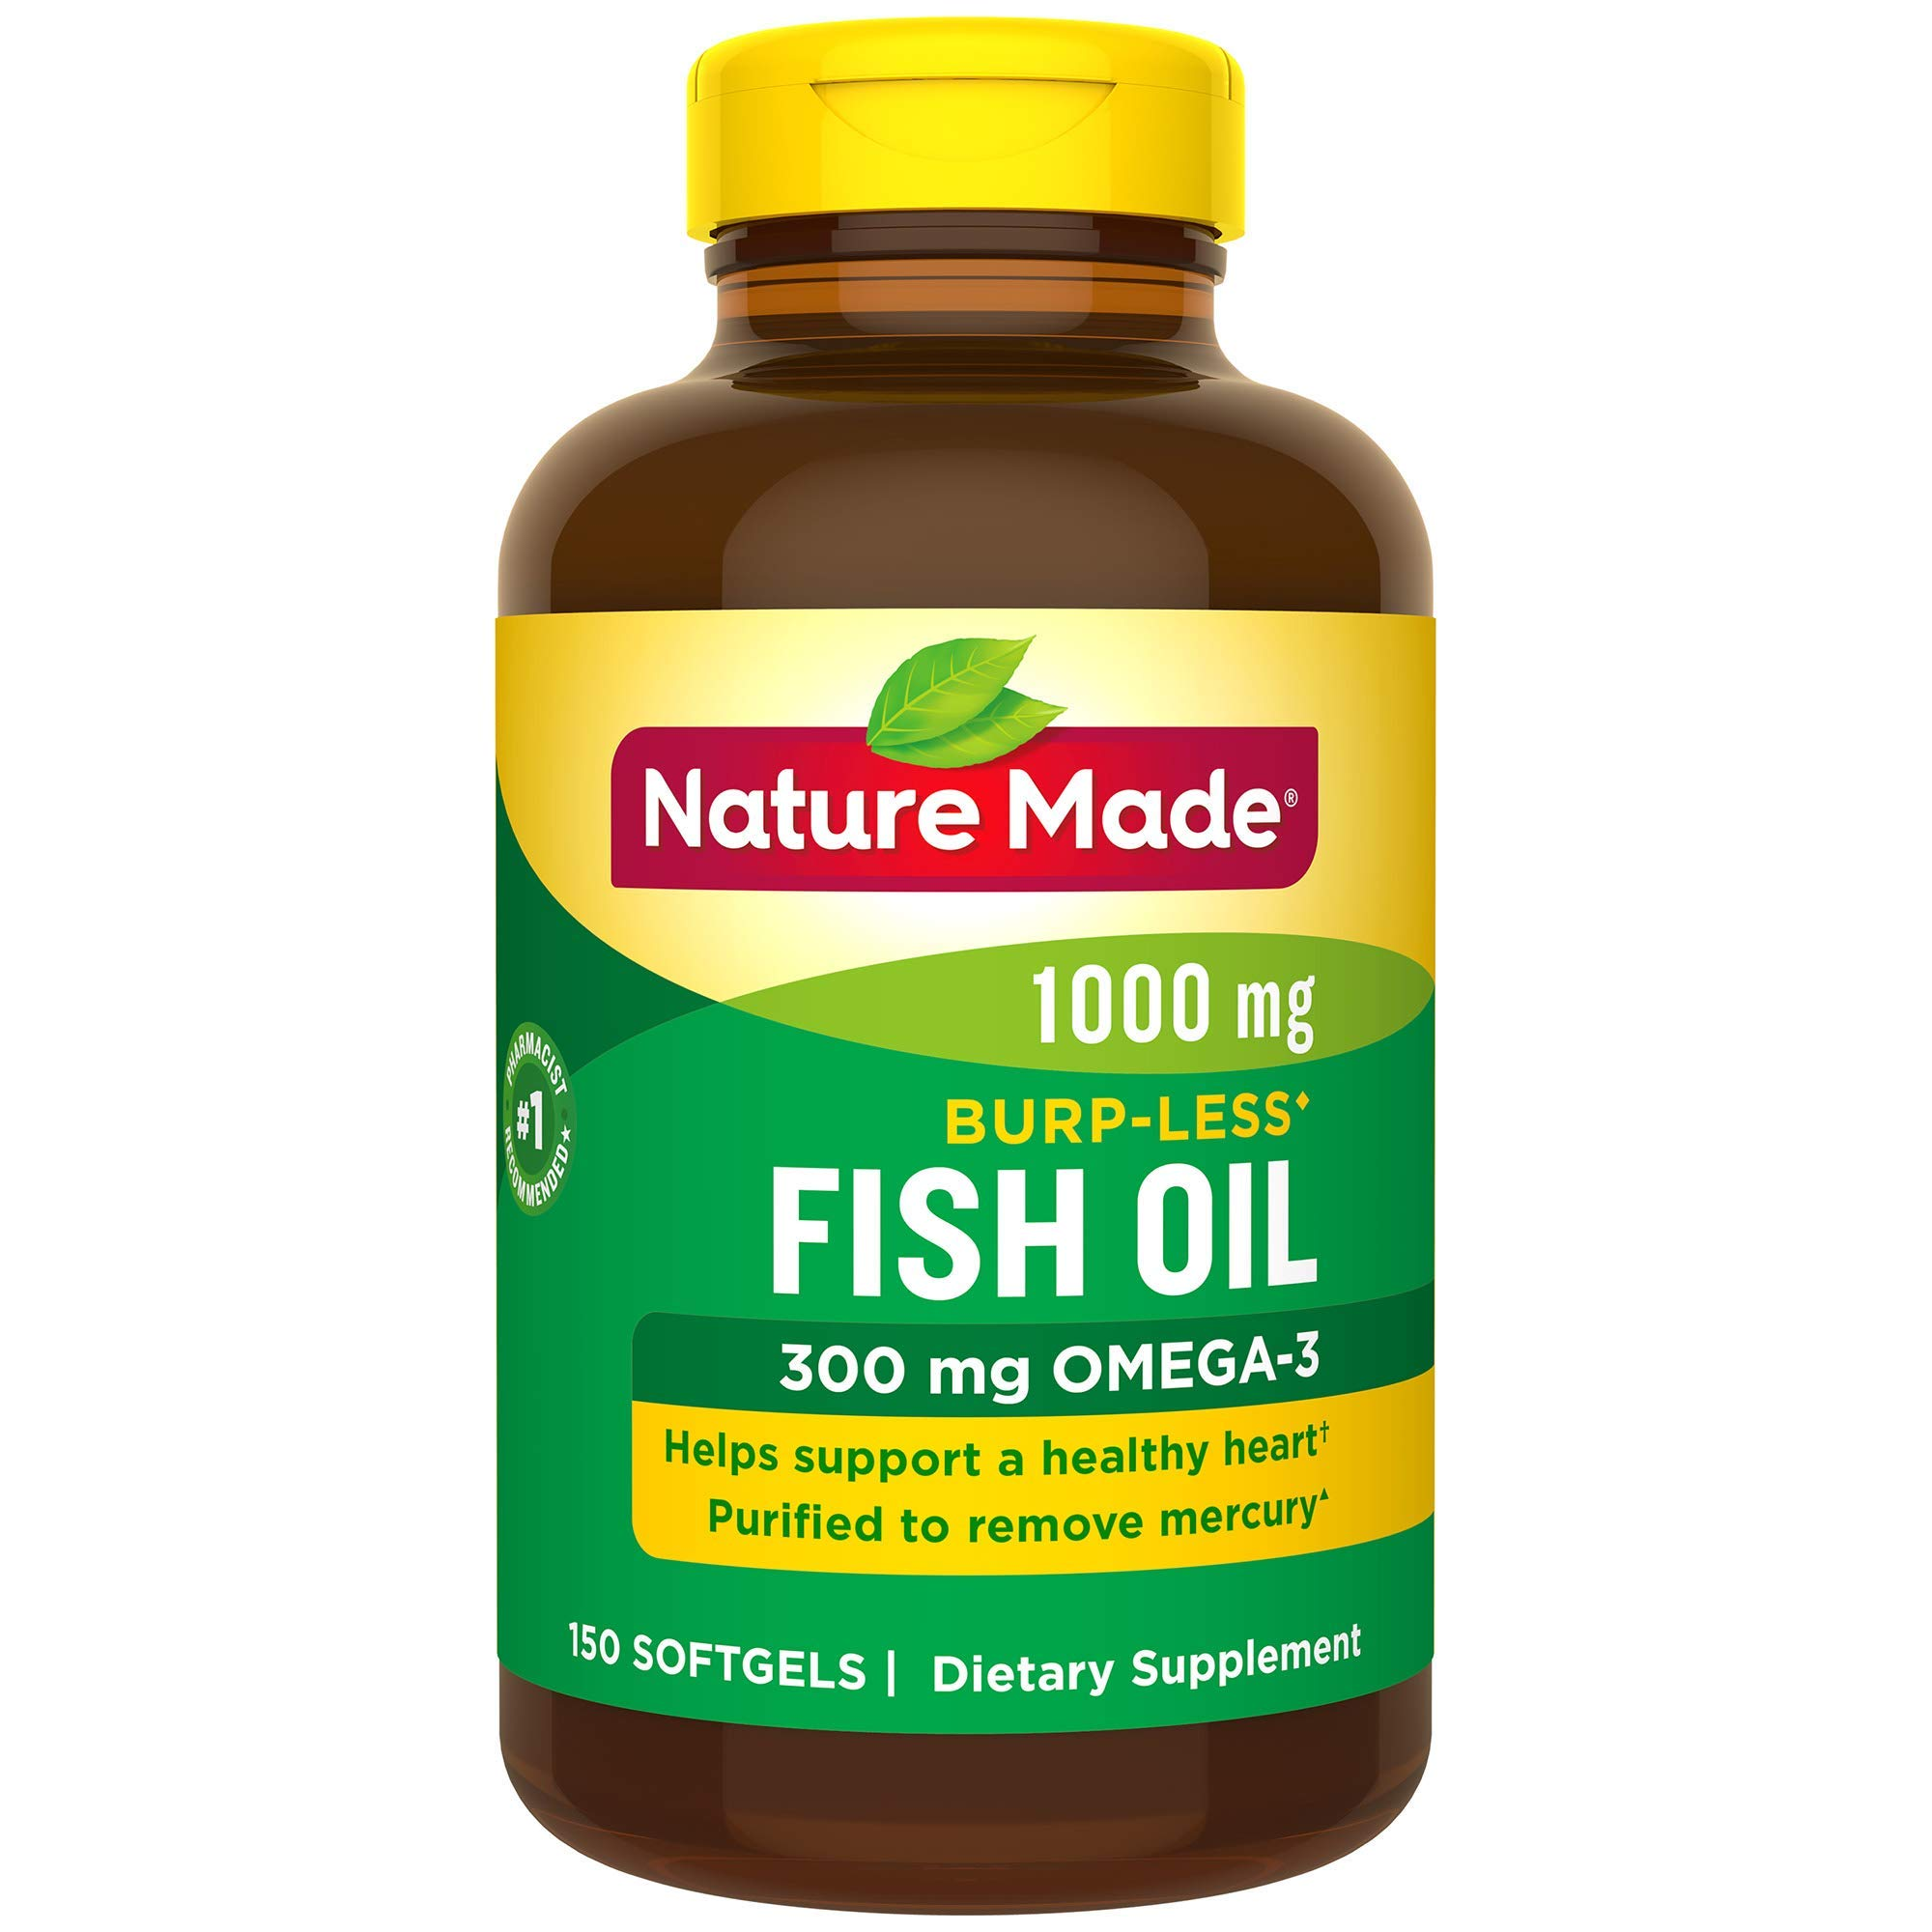 Nature Made Burp-Less Fish Oil 1000 mg Softgels, 150 Count for Heart Health† (Packaging May Vary) by Nature Made